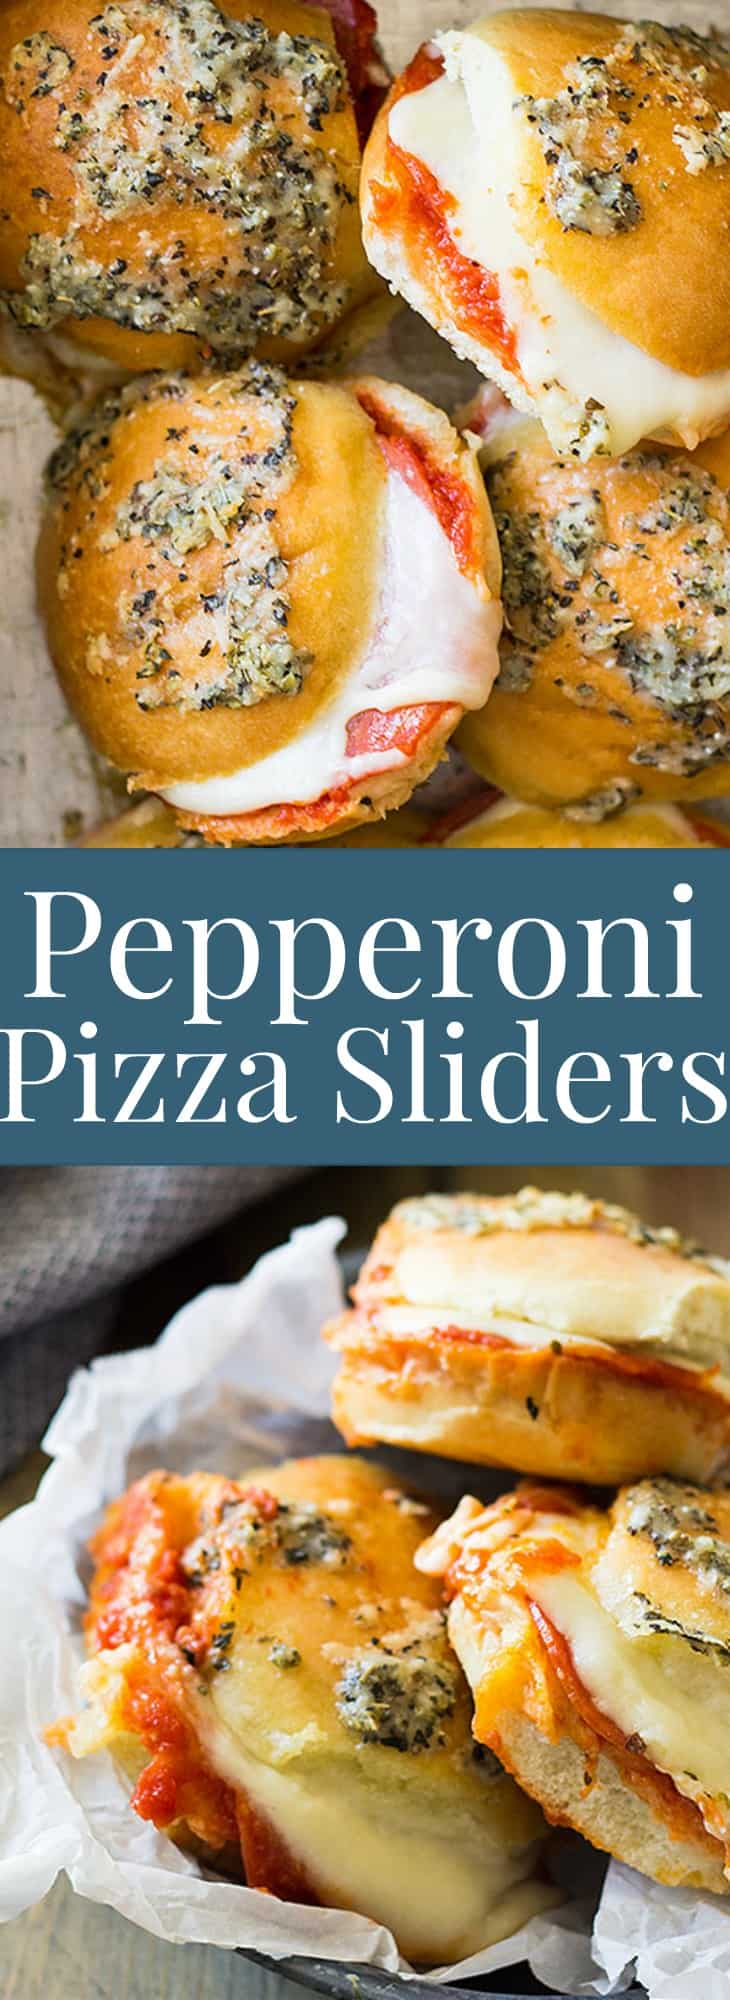 These Pepperoni Pizza Sliders are filled with ooey gooey cheese, pasta sauce and of course pepperoni! Perfect for entertaining! | www.countrysidecravings.com